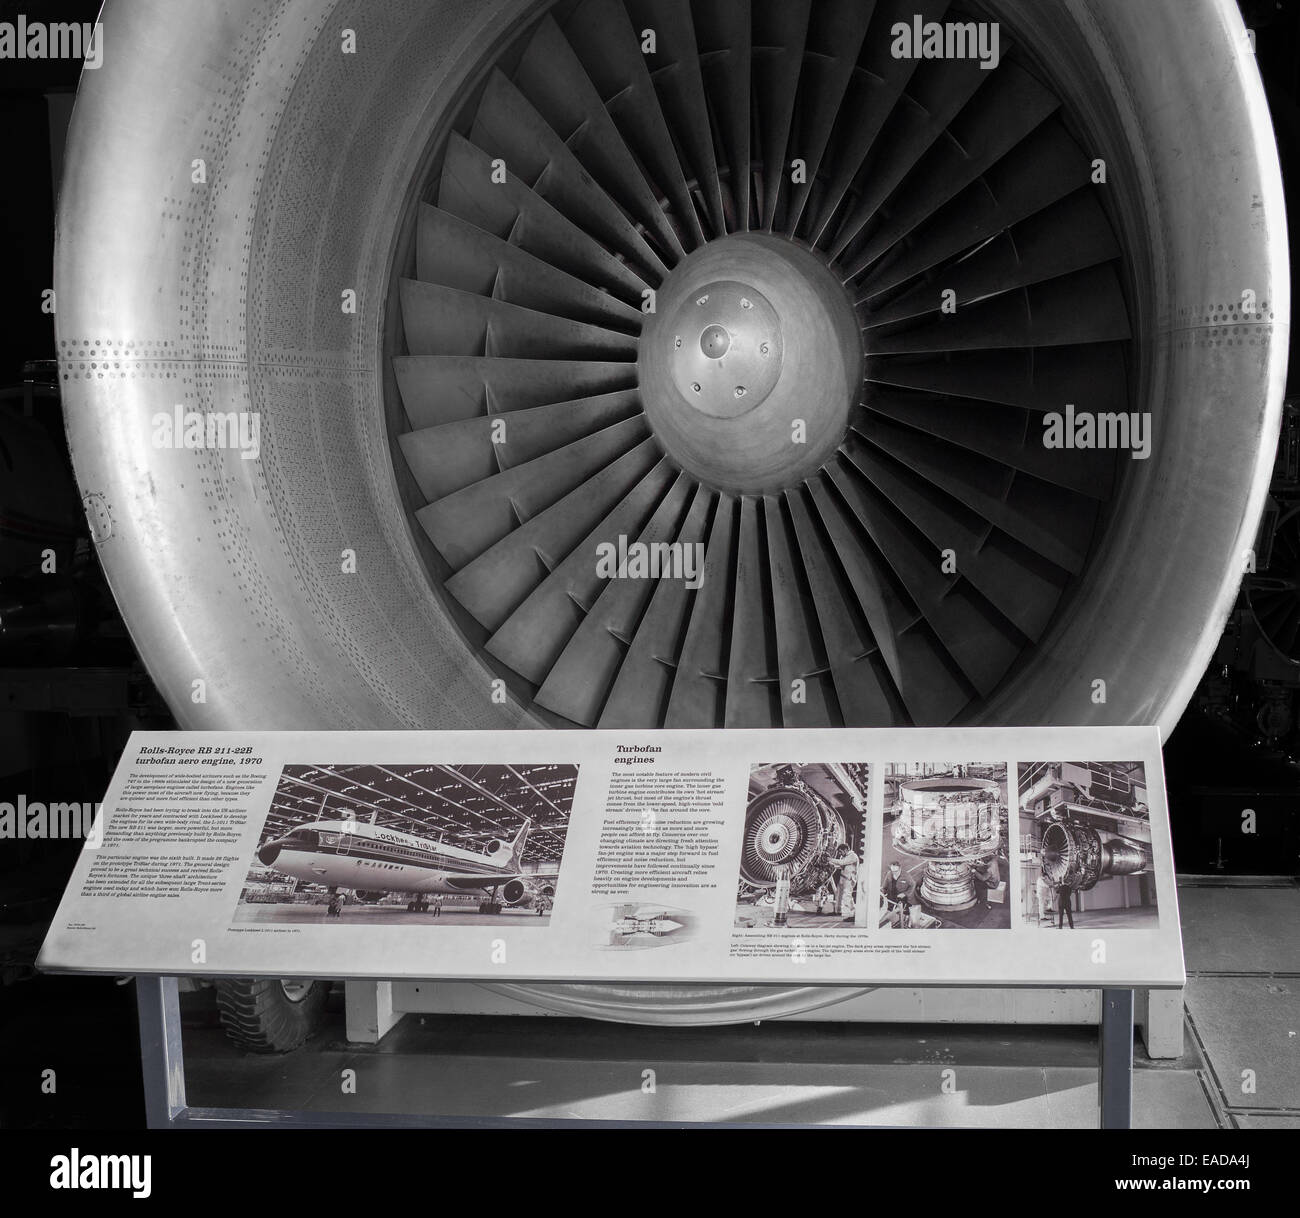 Rolls Royce engine, the RB 211-22B turbofan aero engine (1970), on display at the Science museum, London. - Stock Image